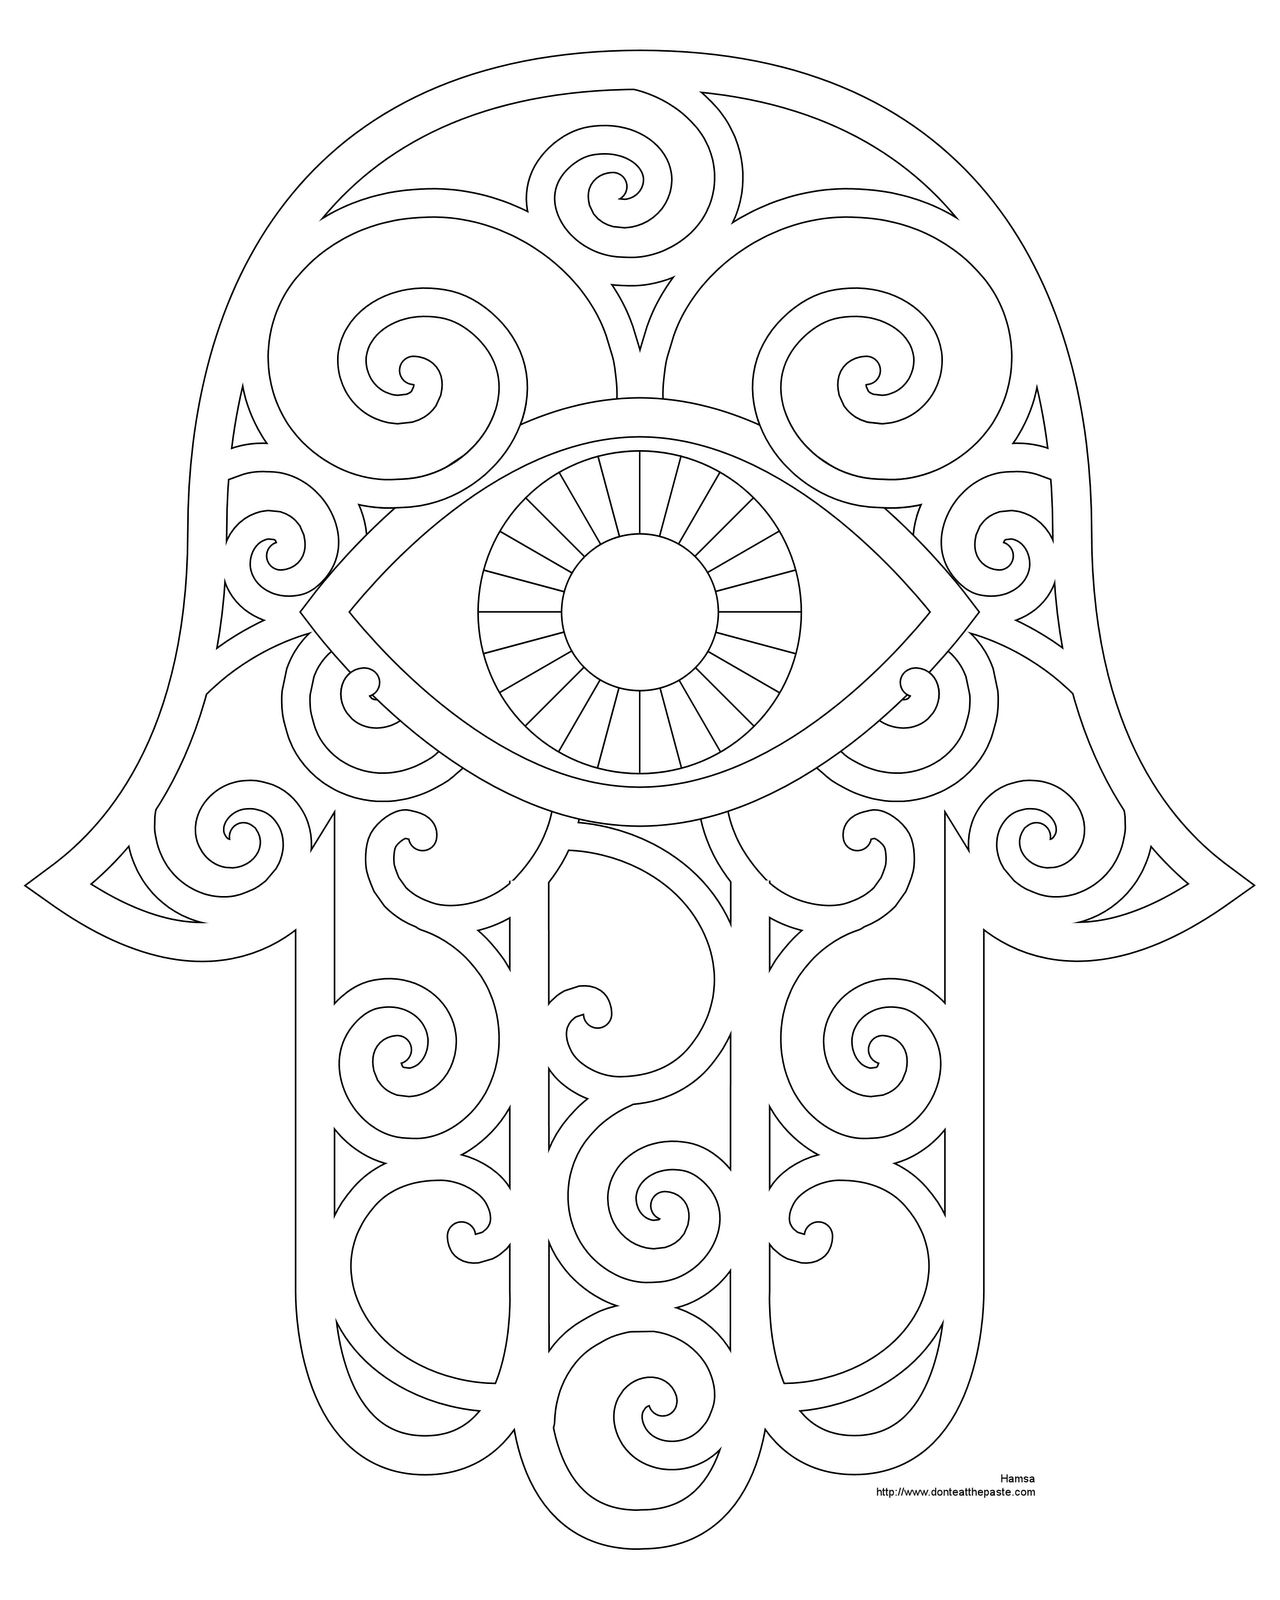 Hamsa Coloring Page and Embroidery Patterns | Mandalas | Pinterest ...